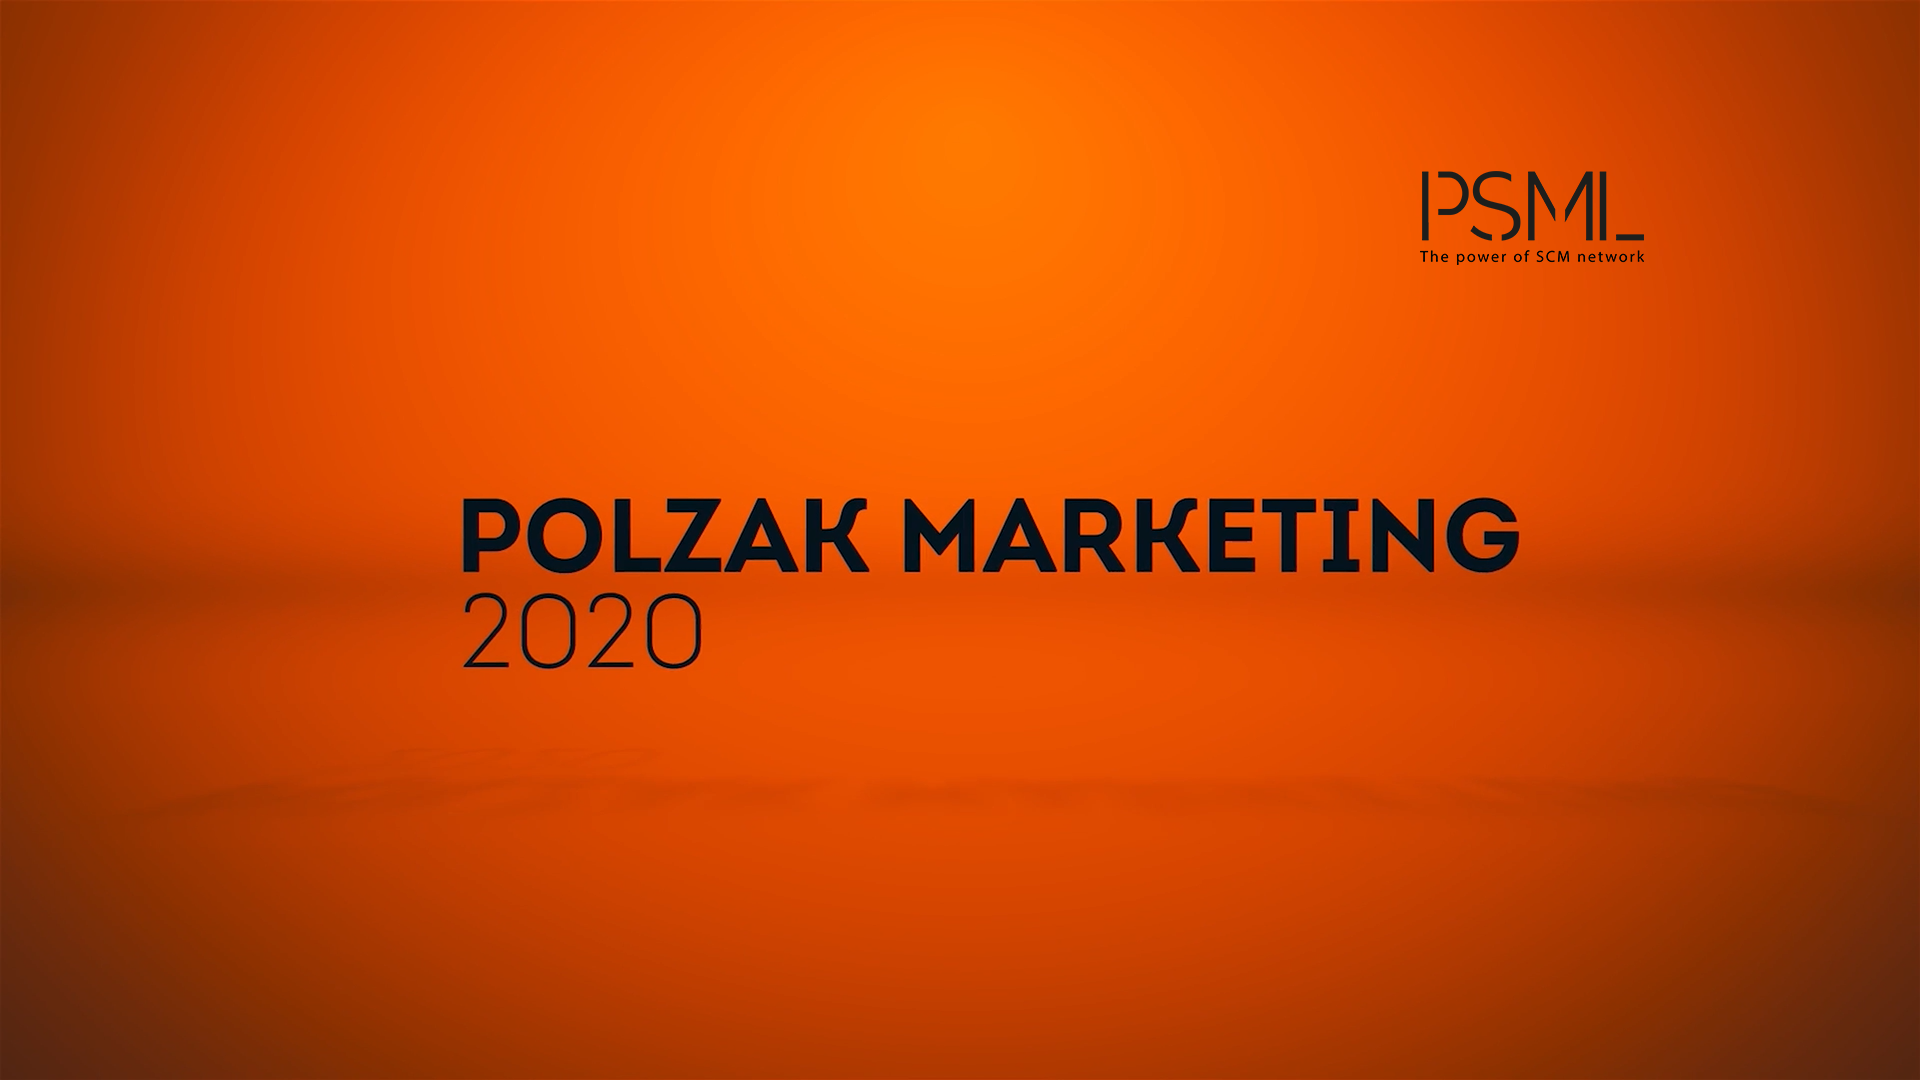 POLZAK Marketing 2020 introduced new dimension of online events!